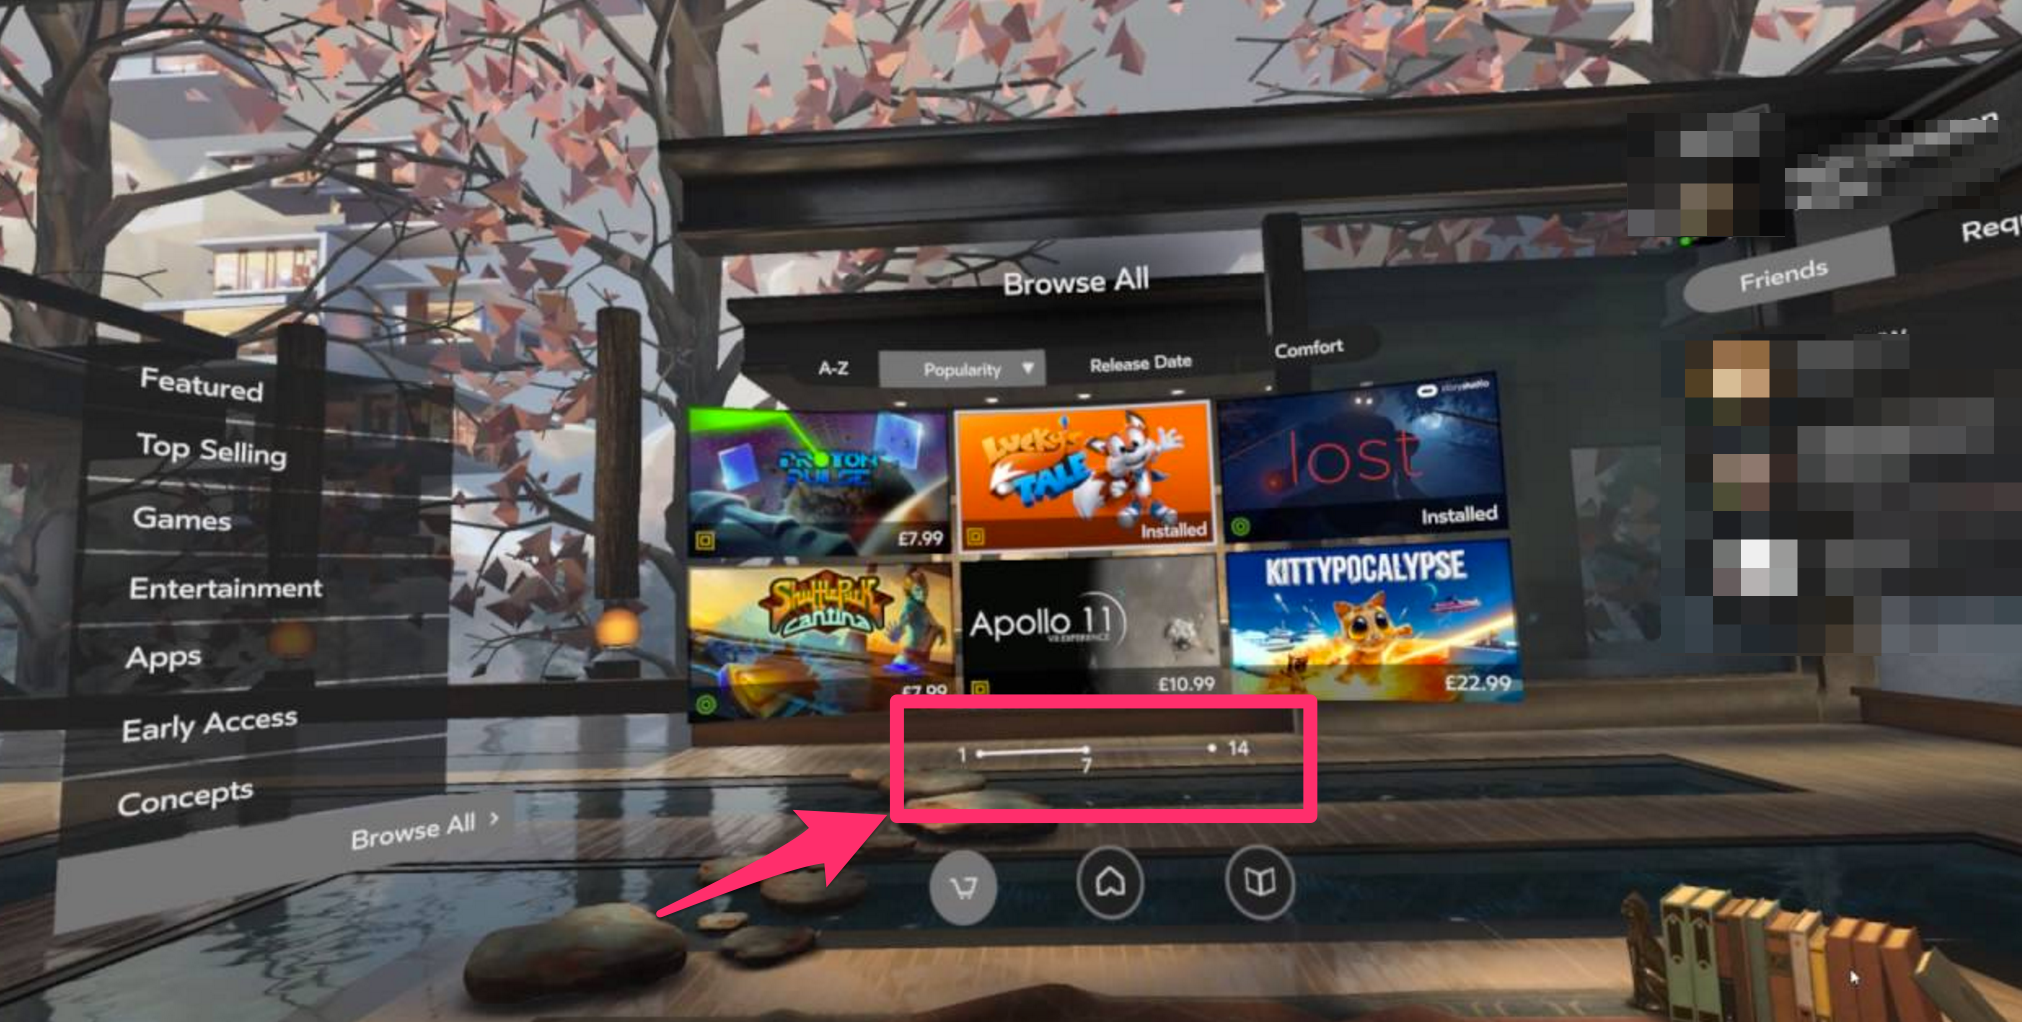 UI Interaction in mobile Virtual Reality — 4 reasons to not